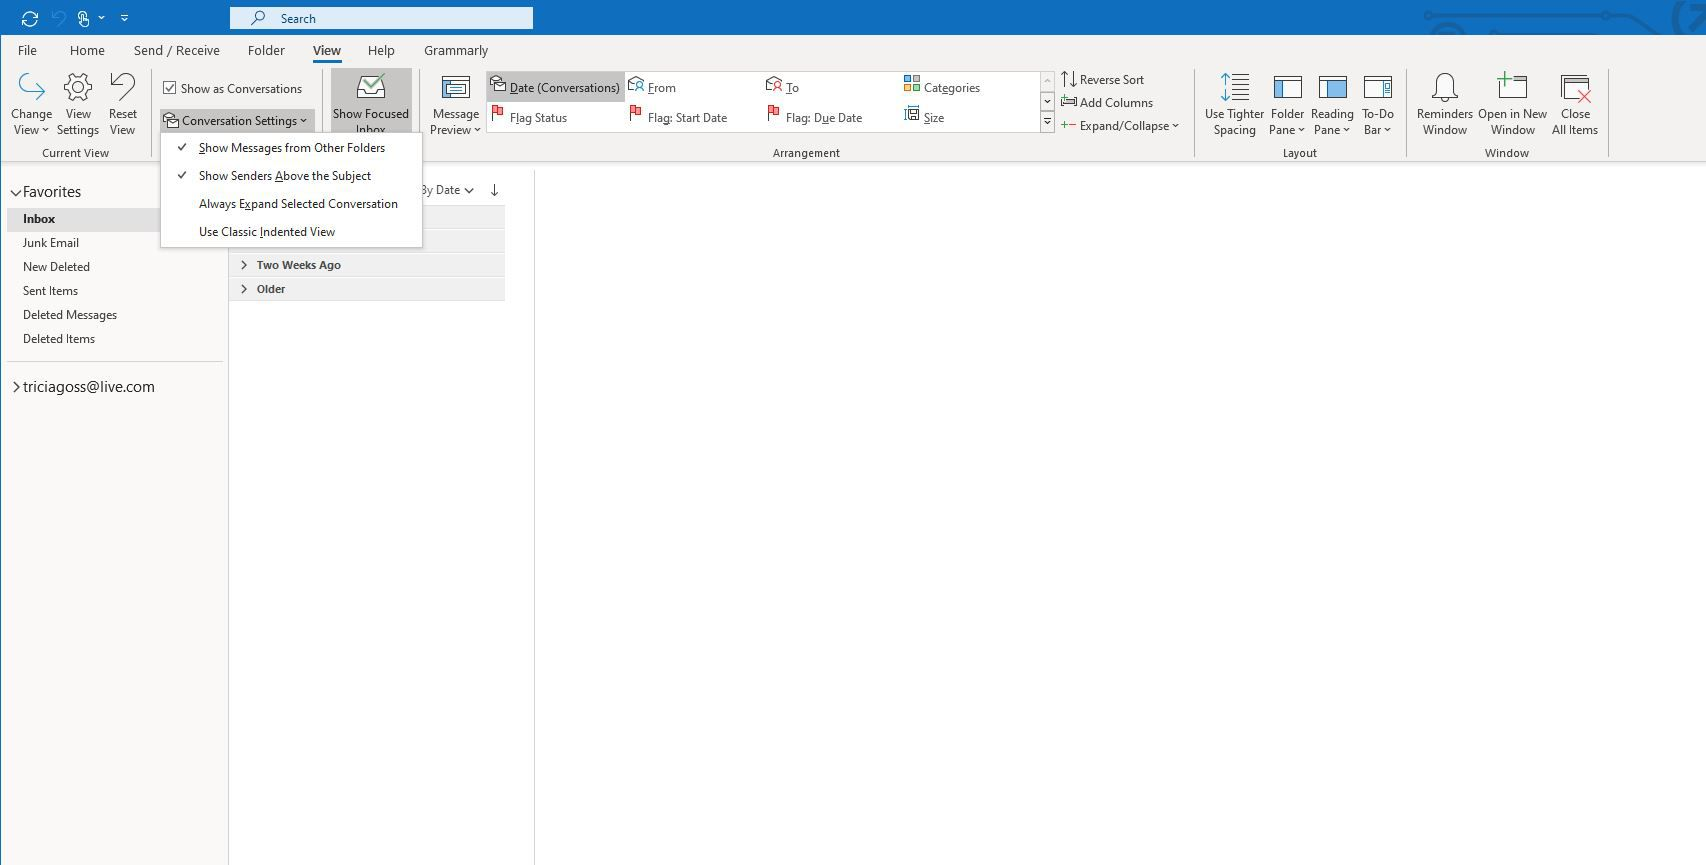 View > Conversation Settings in Outlook.